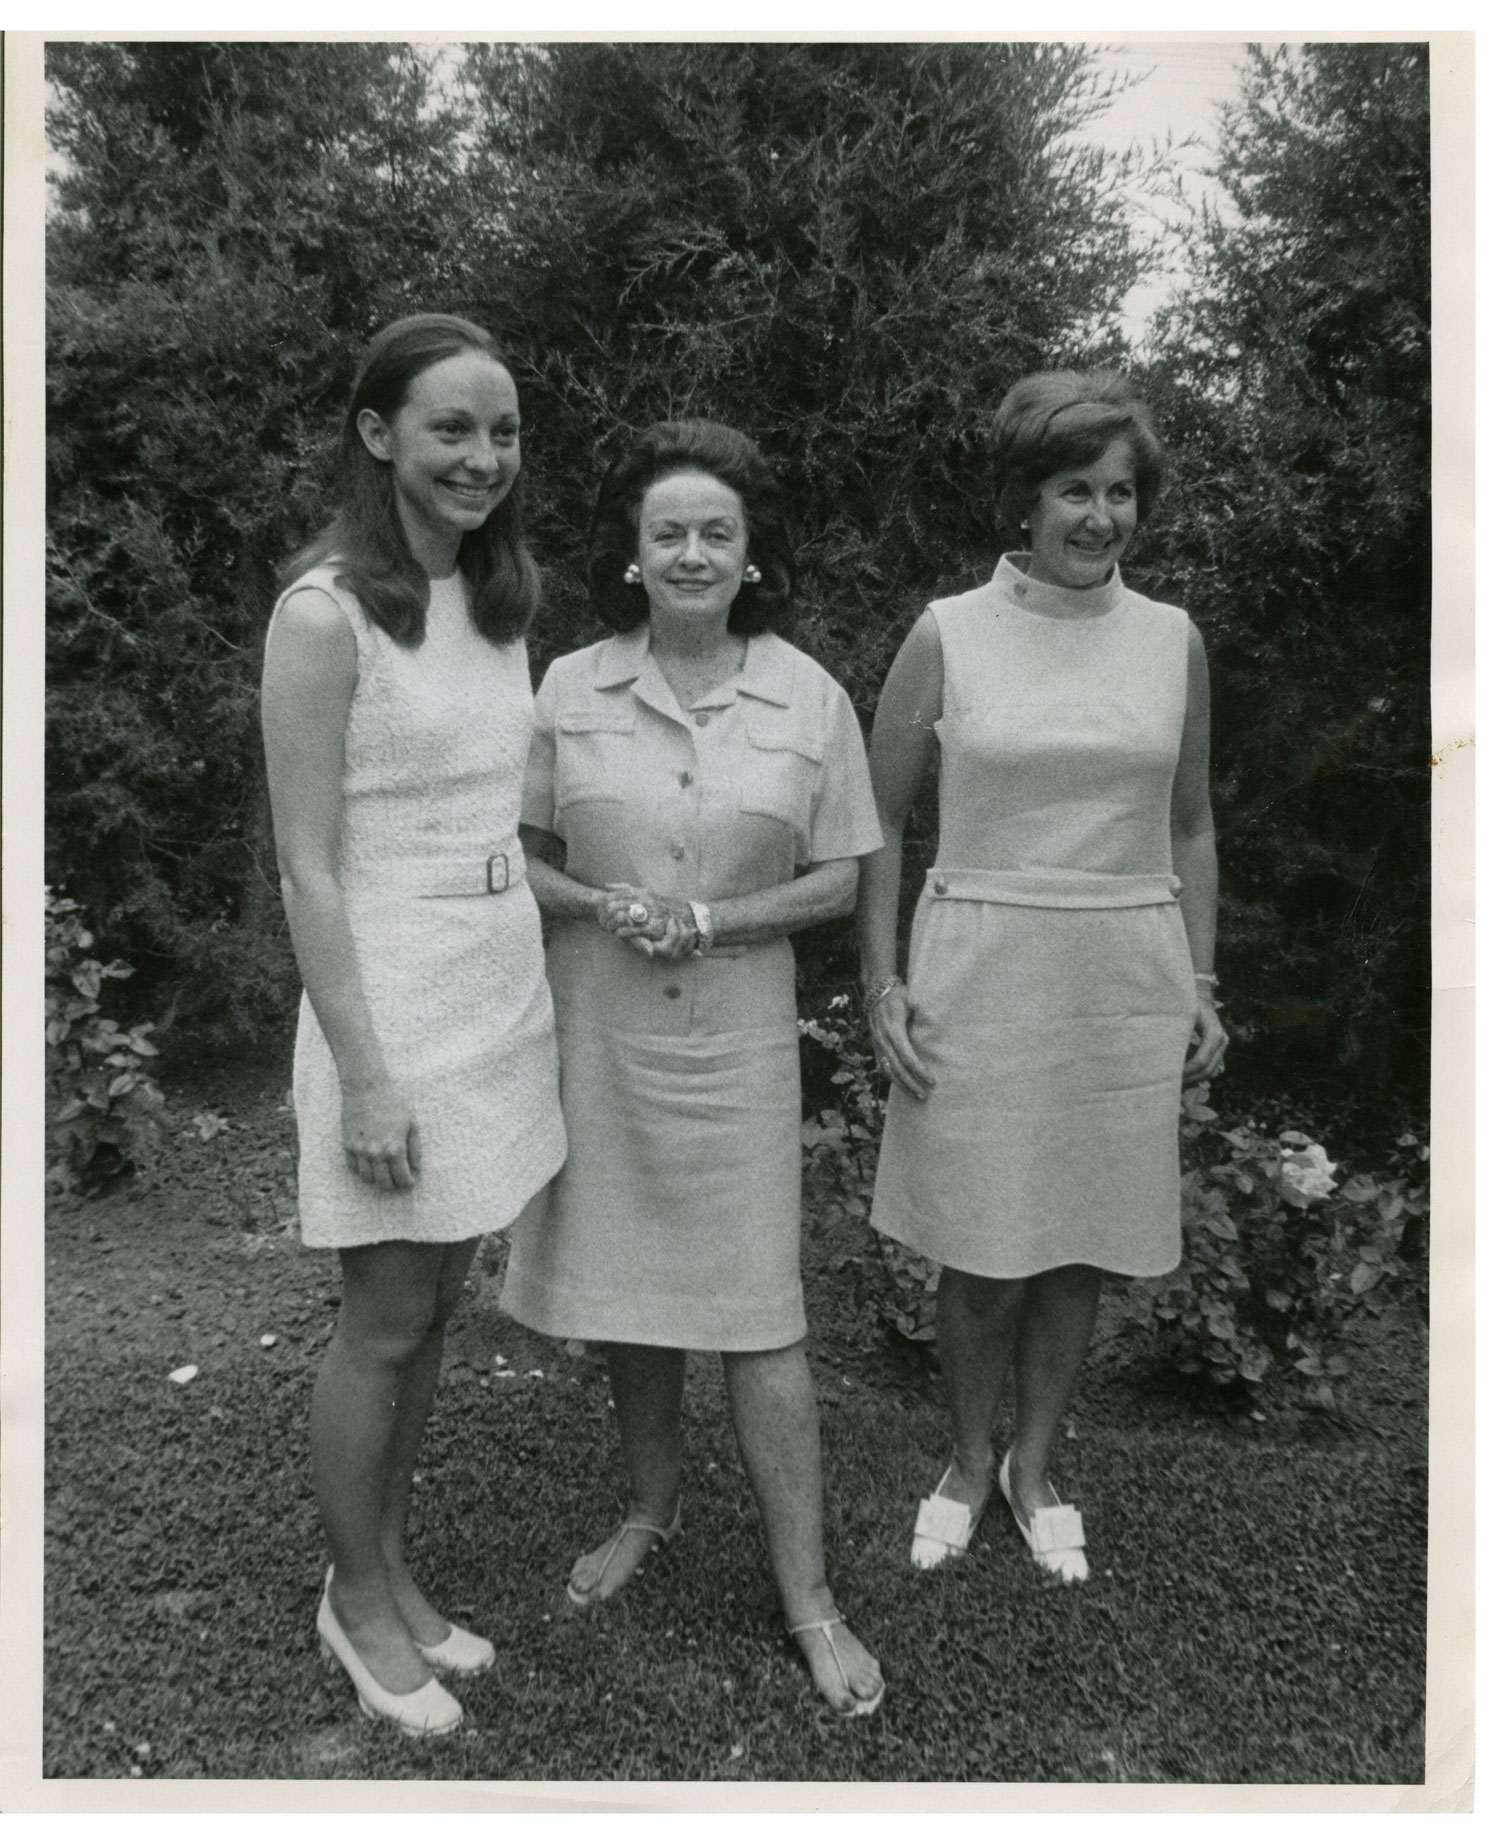 Diane Stockmar Hunt with Dolly and Burtie Green